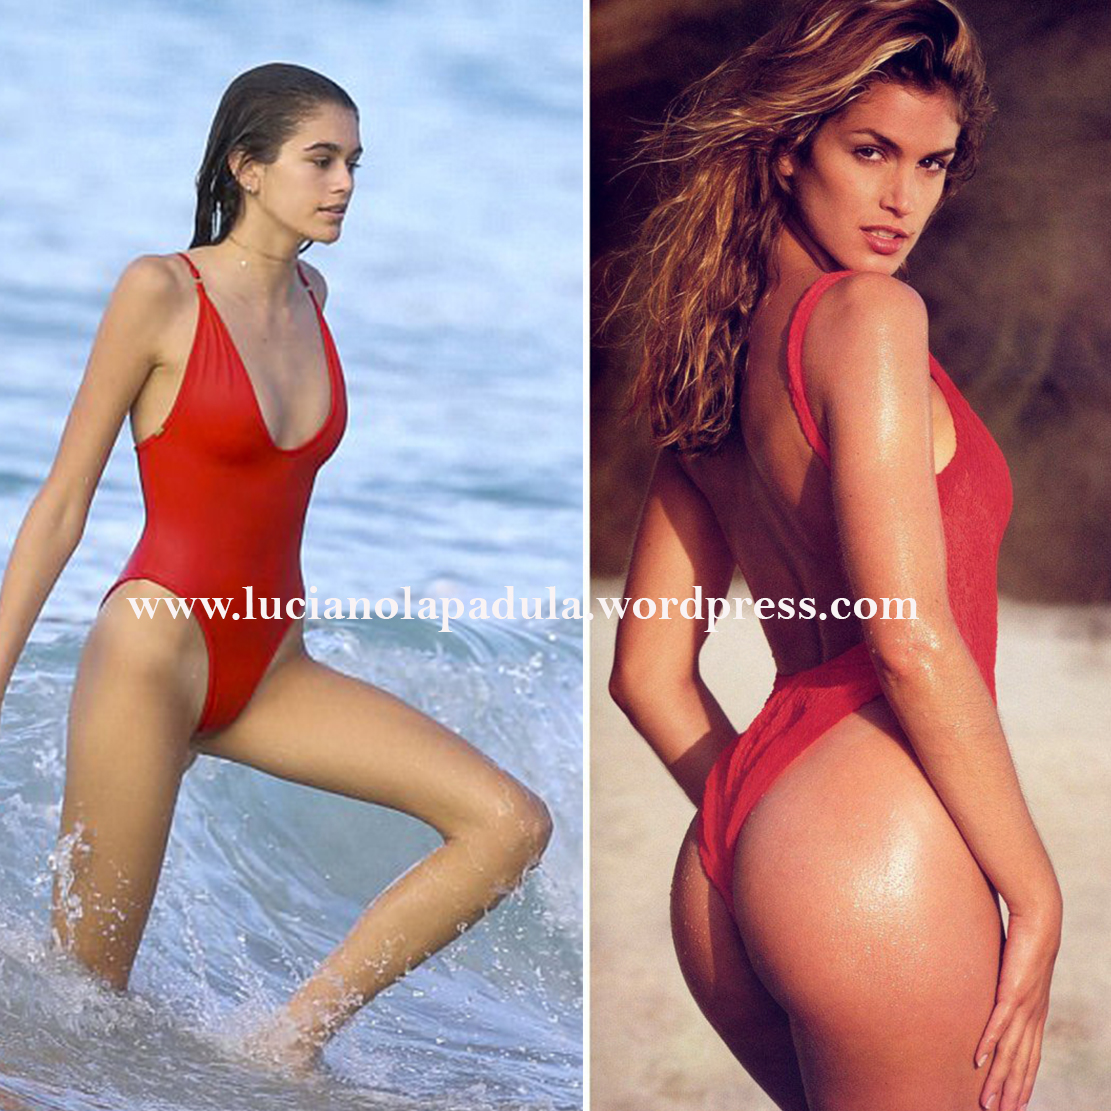 cindy crawford 90s daughter model kaia gerber comparison anorexic blog luciano lapadula blogger fashion expert history versace swimwear red